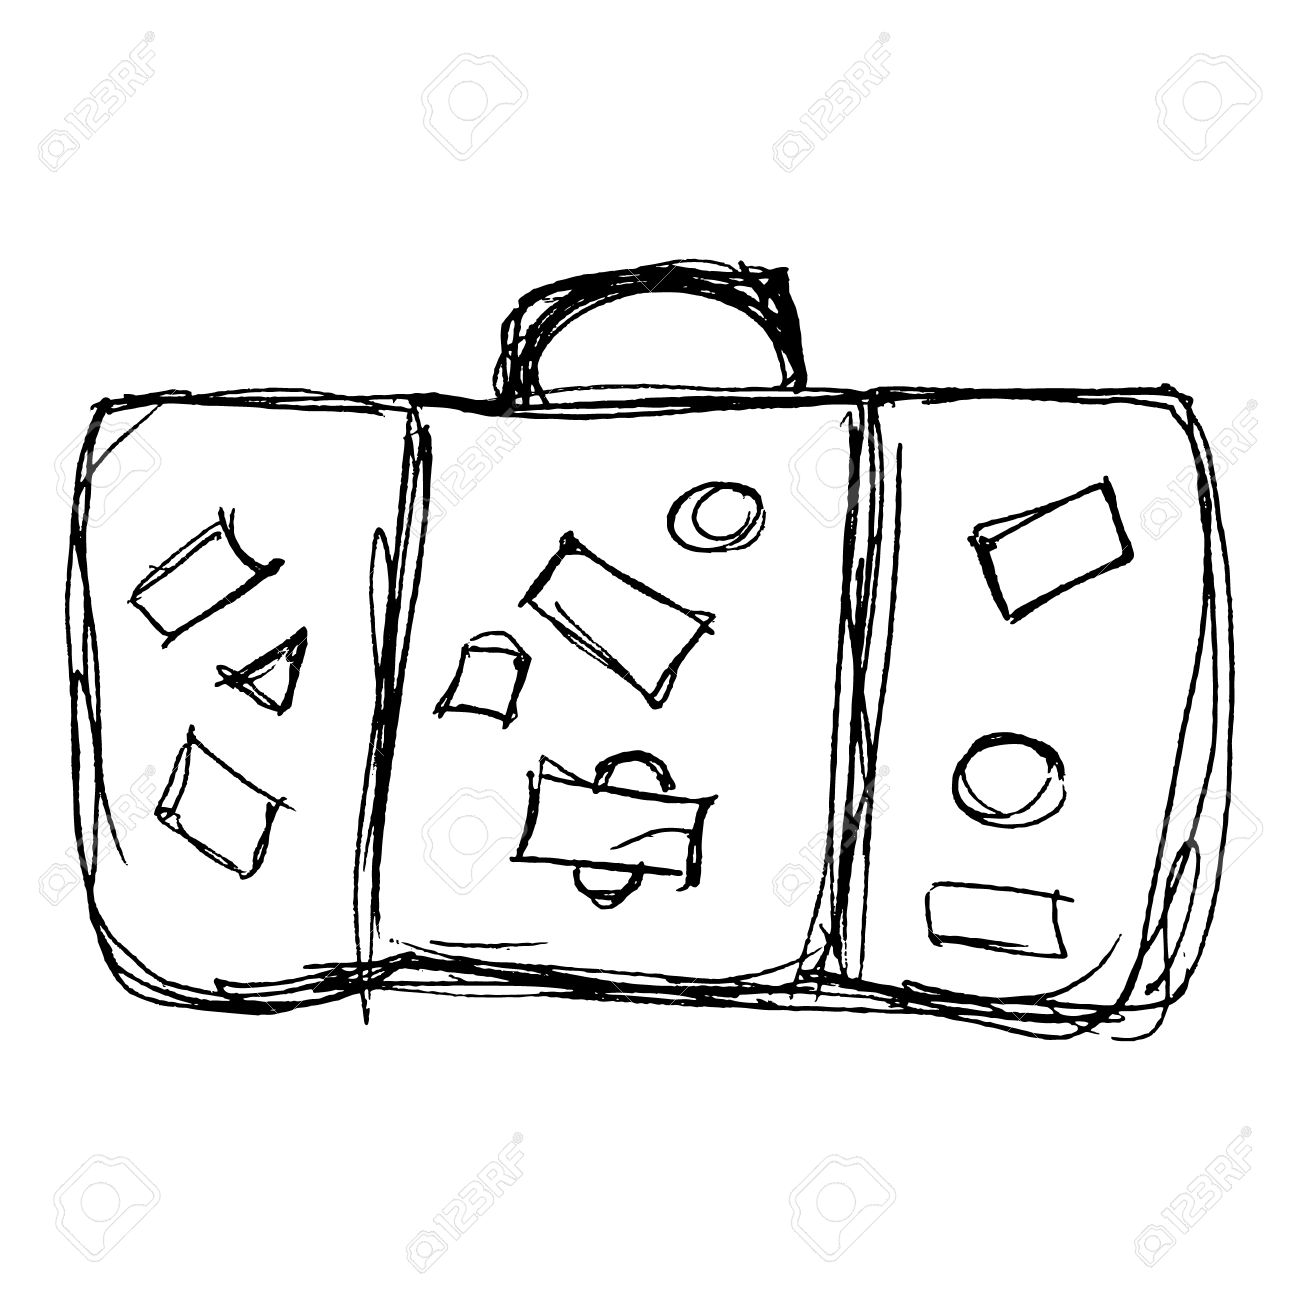 Luggage Drawing At Getdrawings